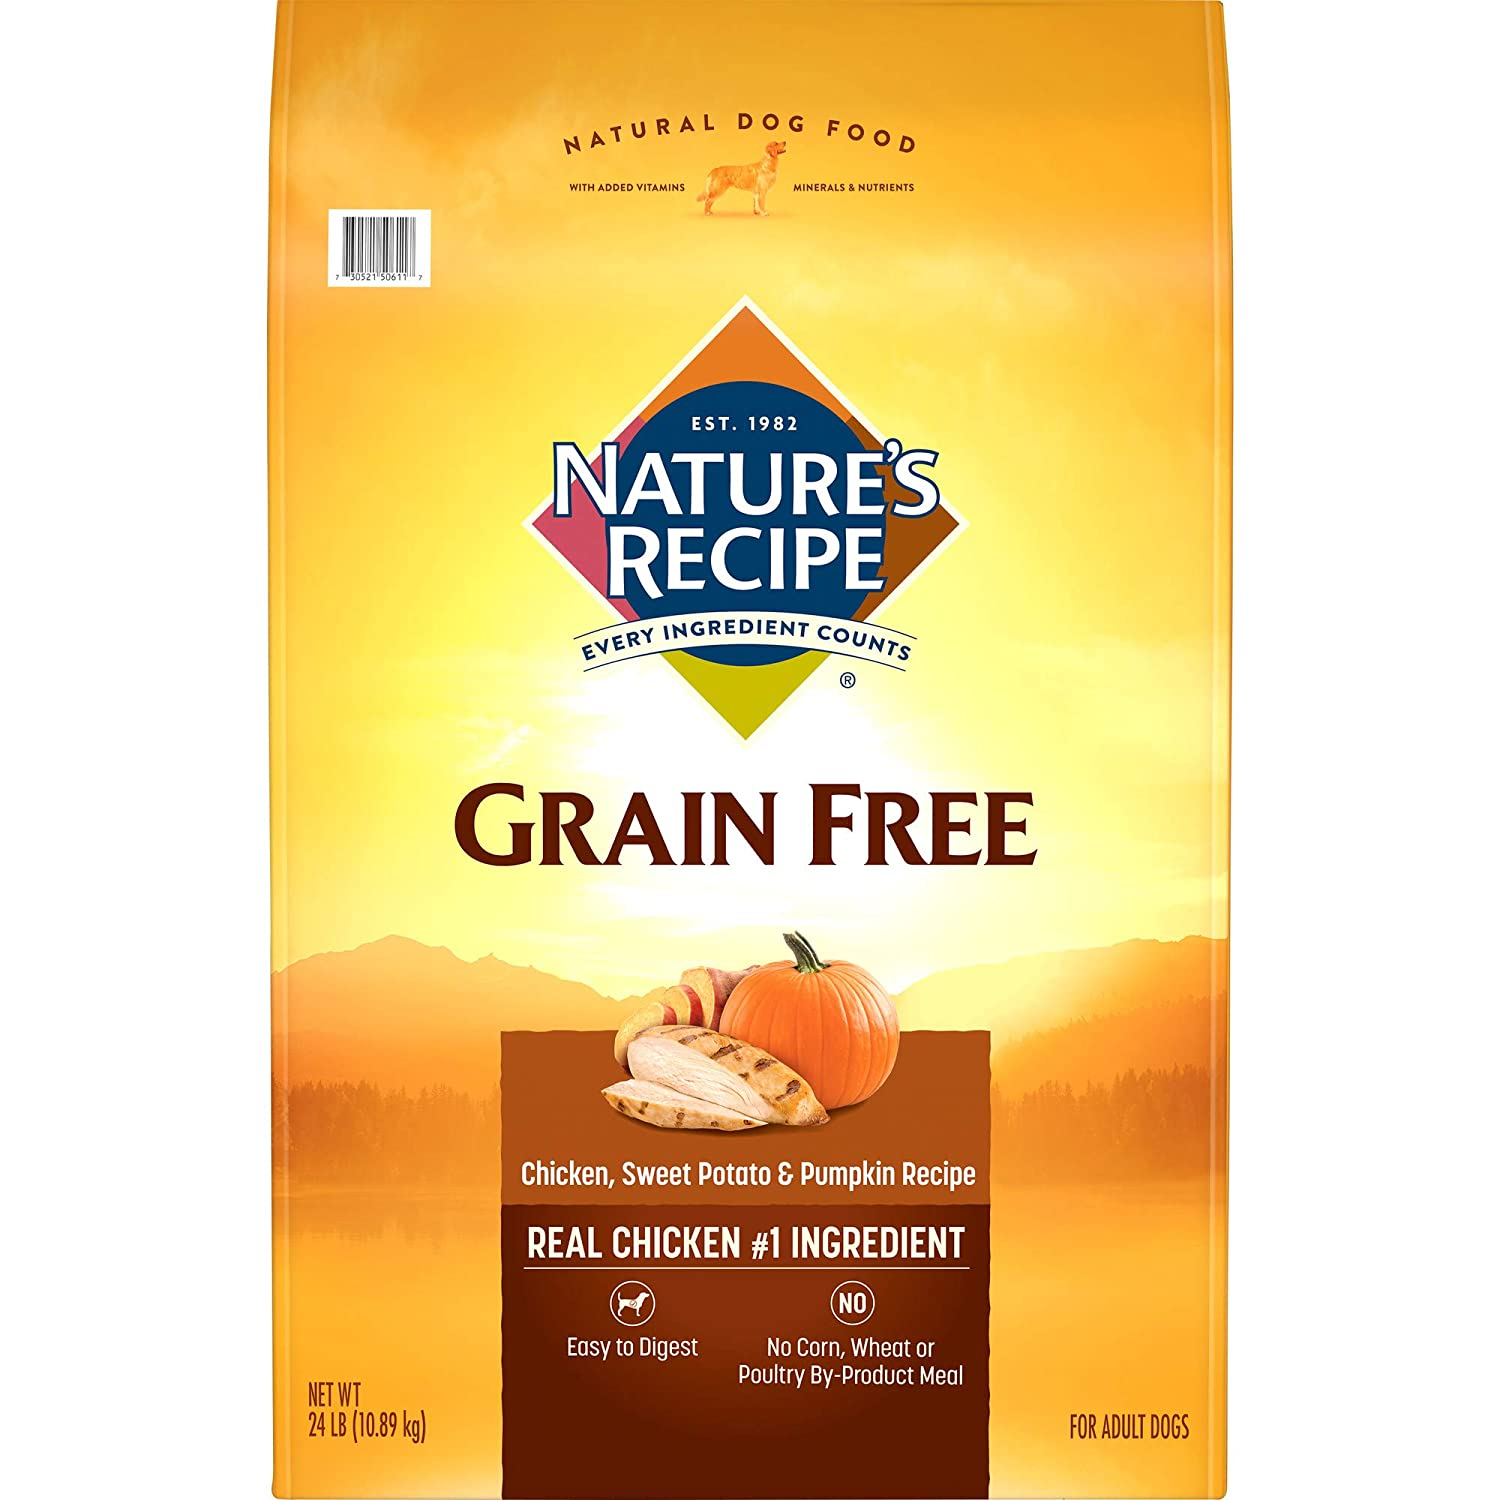 Nature's Recipe Grain Free Dry Dog Food Chicken, Sweet Potato & Pumpkin Recipe